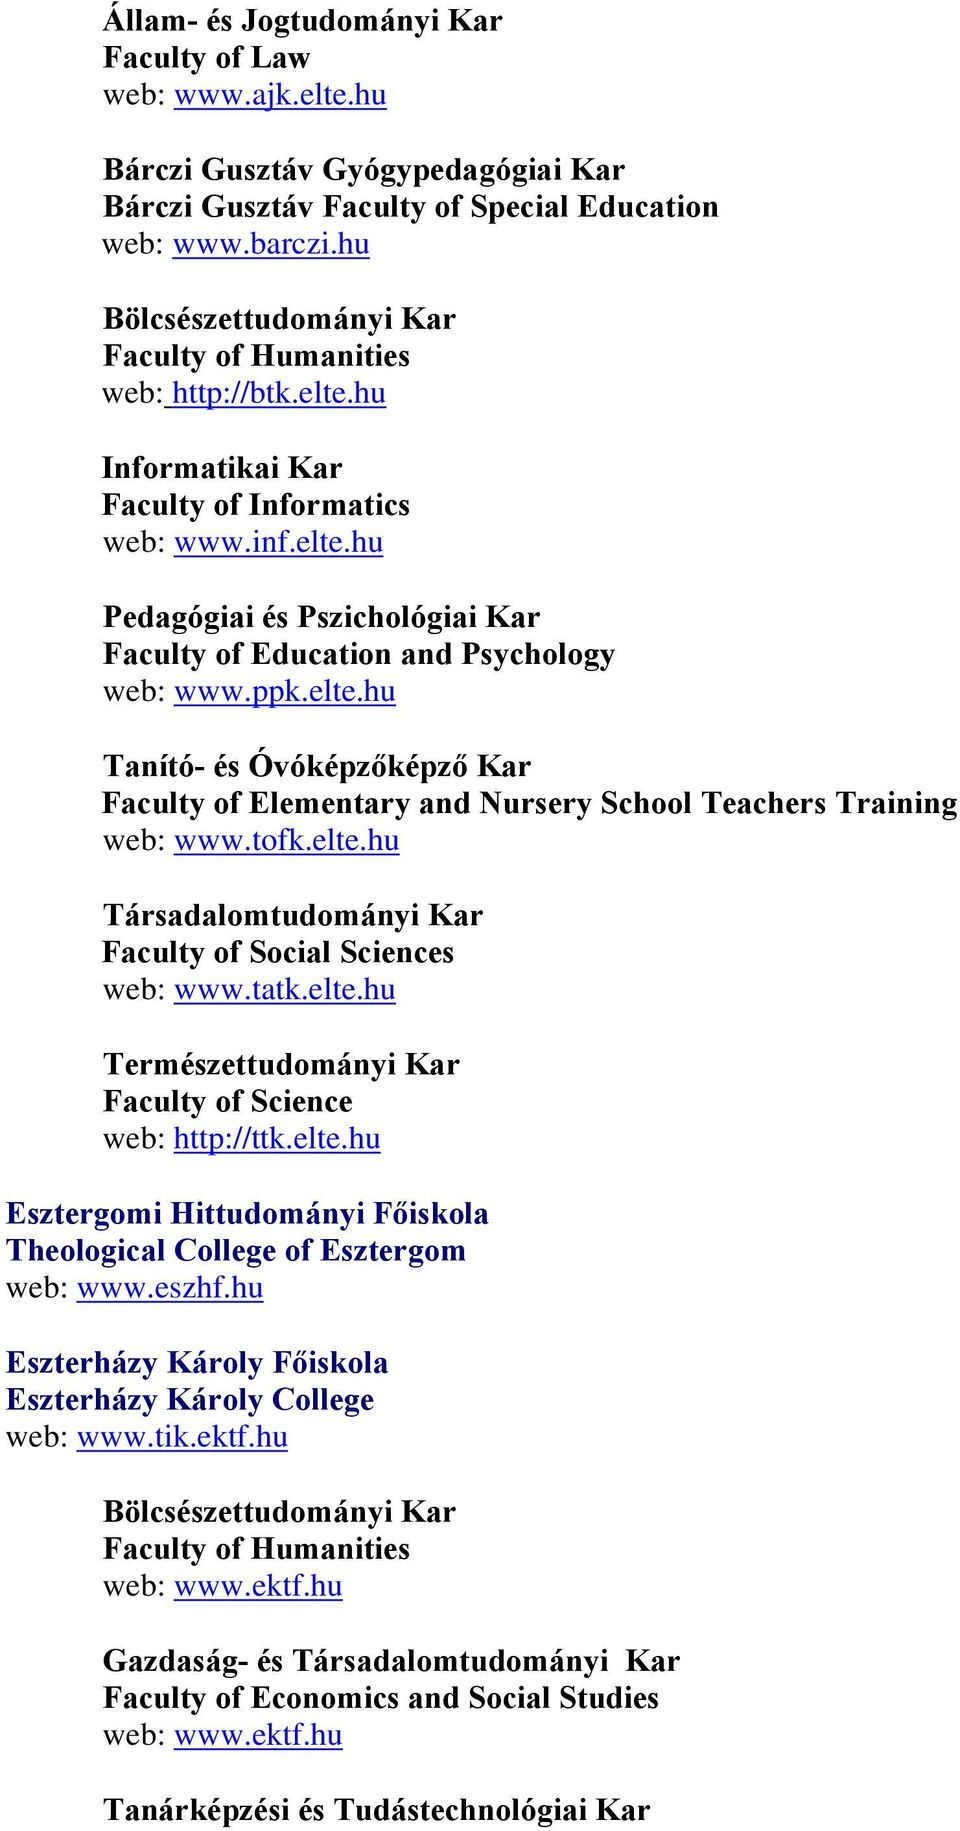 ppk.elte.hu Tanító- és Óvóképzőképző Kar Faculty of Elementary and Nursery School Teachers Training web: www.tofk.elte.hu Társadalomtudományi Kar Faculty of Social Sciences web: www.tatk.elte.hu Természettudományi Kar Faculty of Science web: http://ttk.